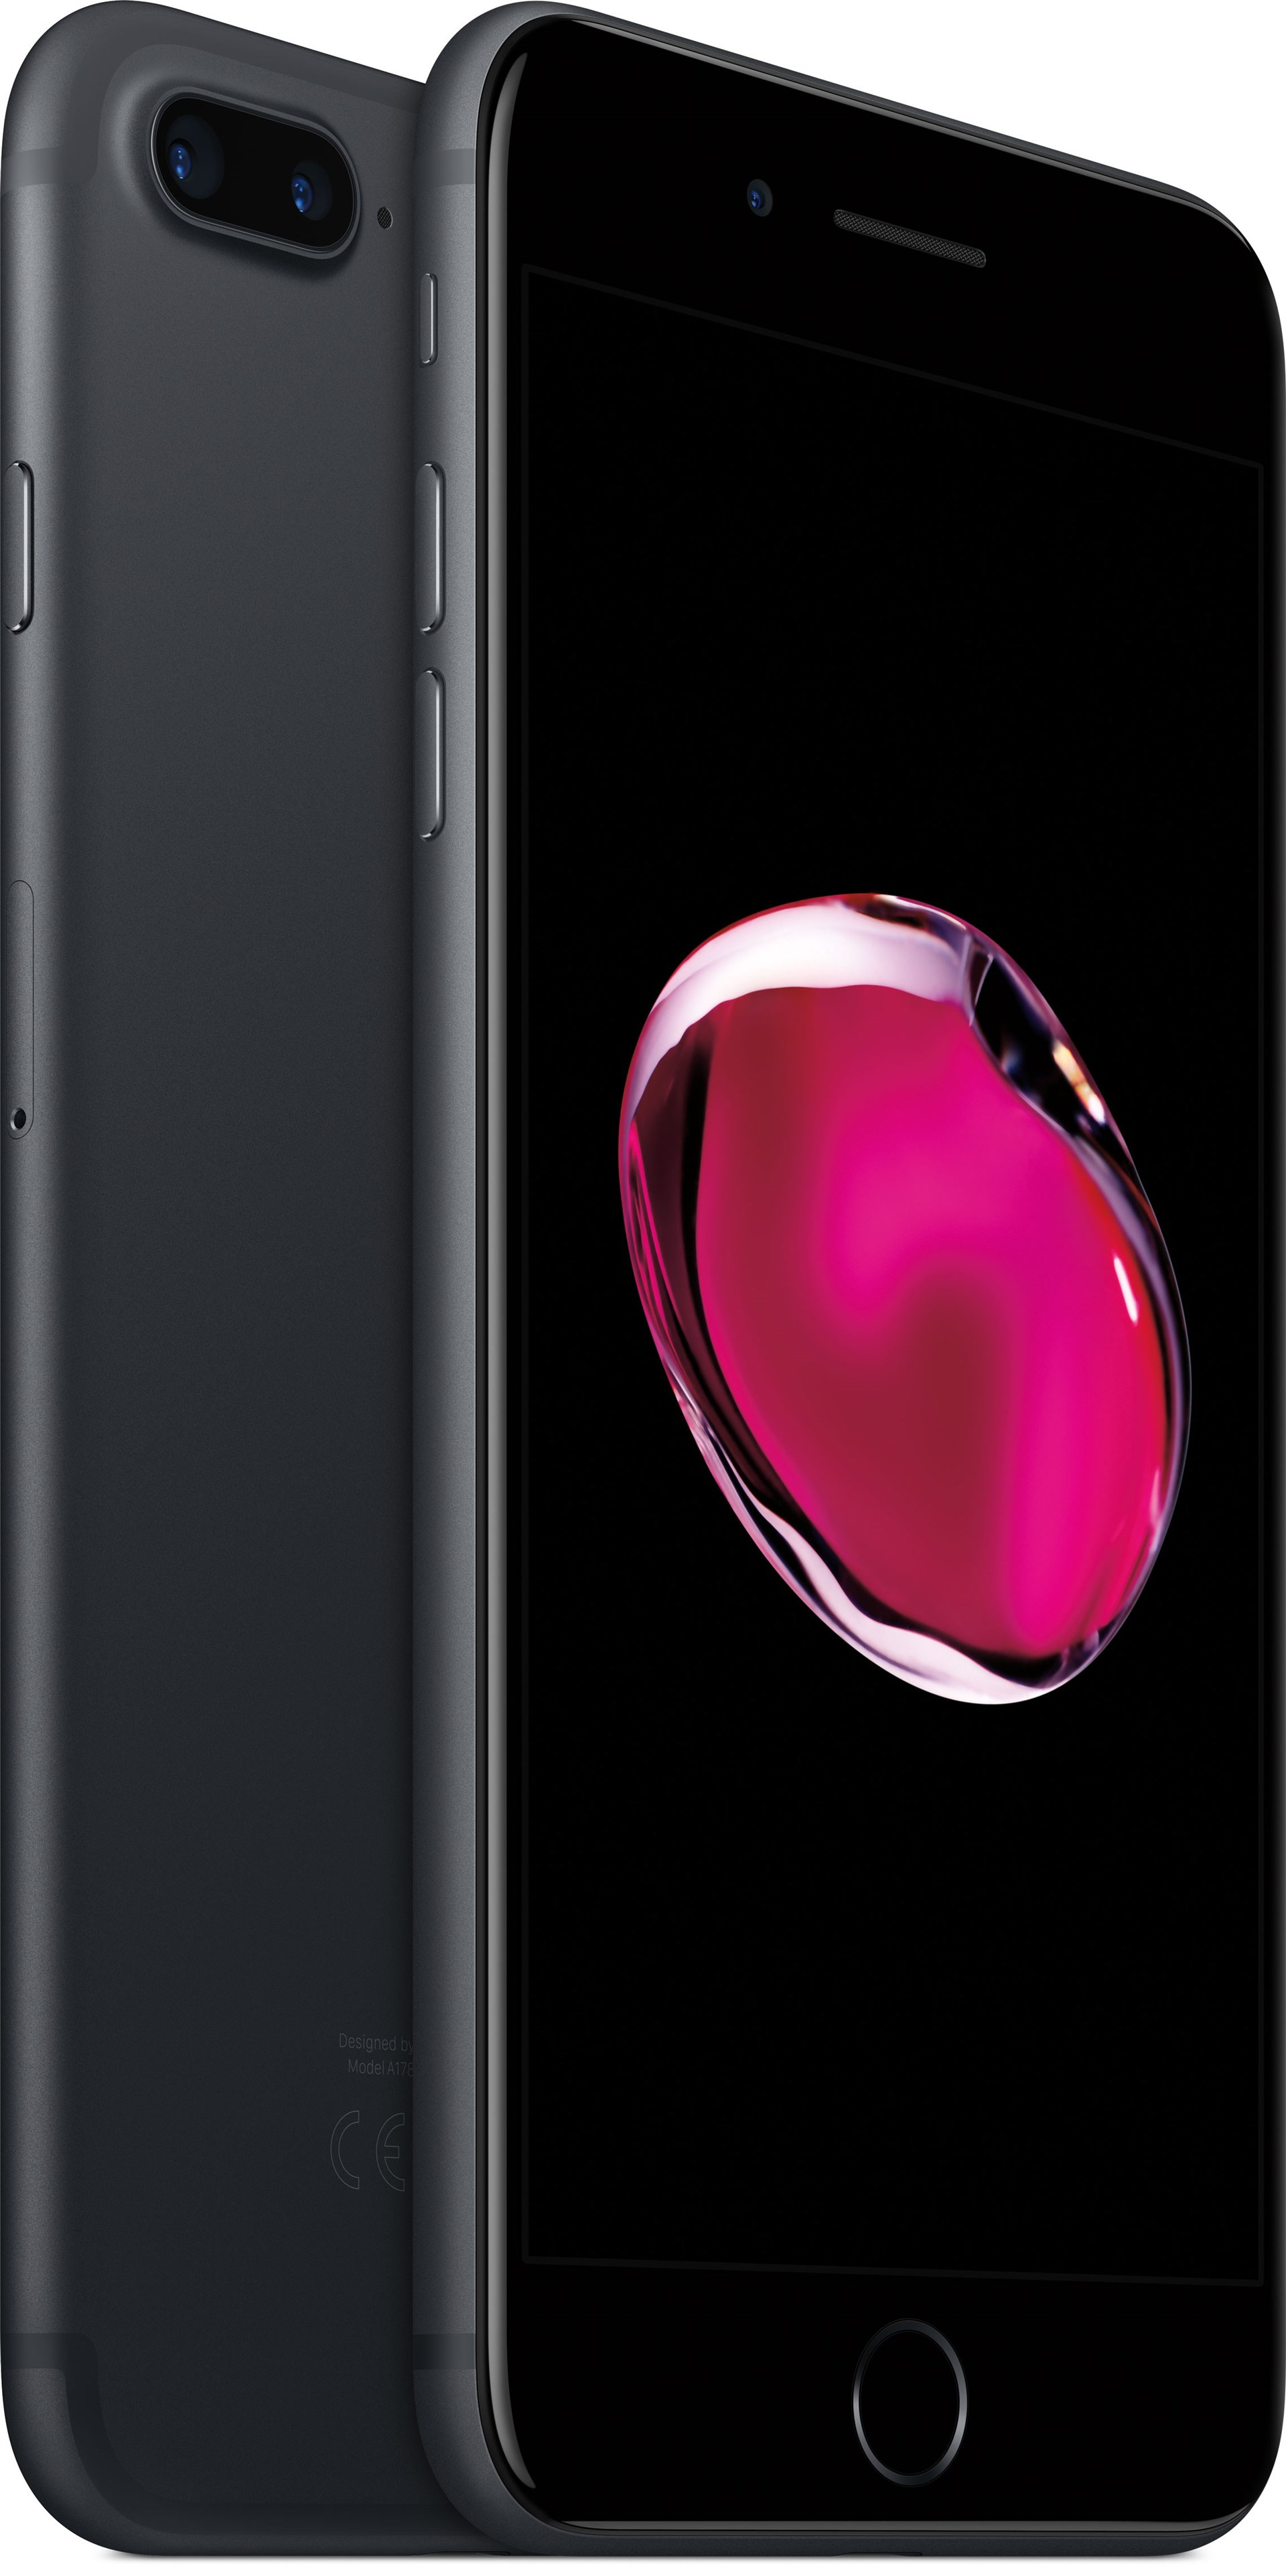 apple iphone 7 plus 32gb black iphone 7 plus nu nnu kraftfullare. Black Bedroom Furniture Sets. Home Design Ideas